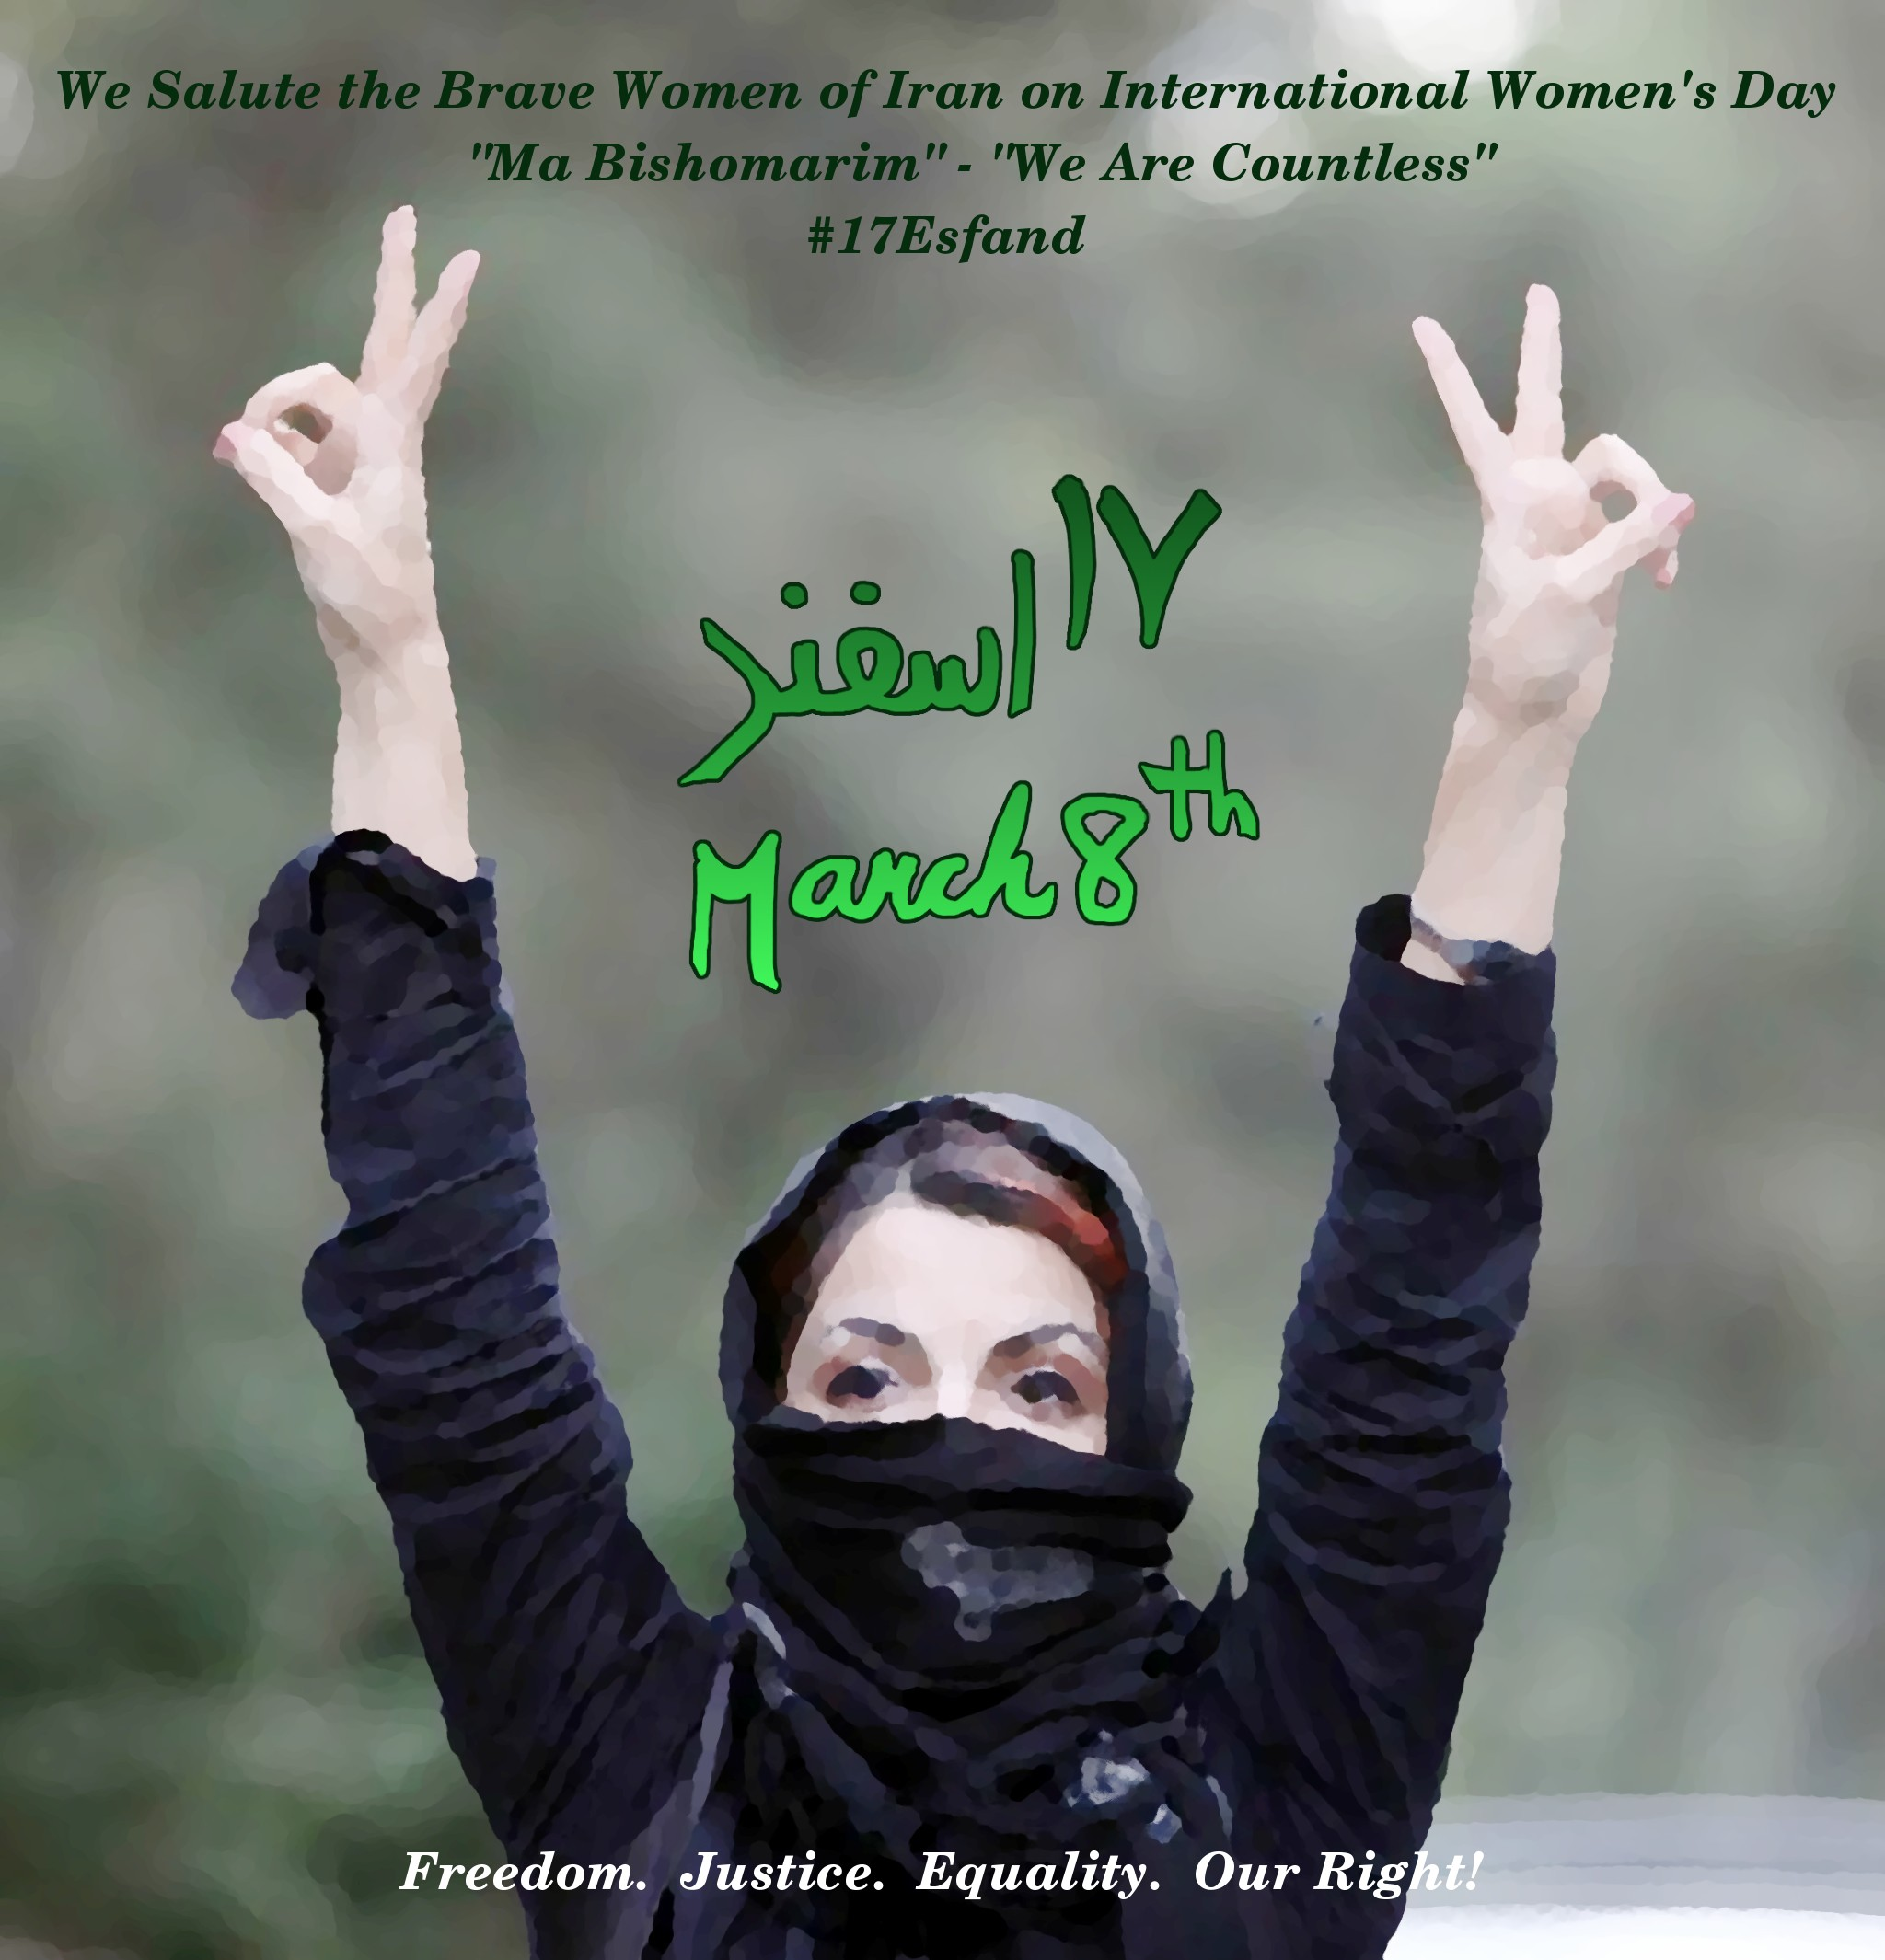 Green Media: Poster: 17 Esfand – March 8th – Freedom. Justice. Equality. Our Right!